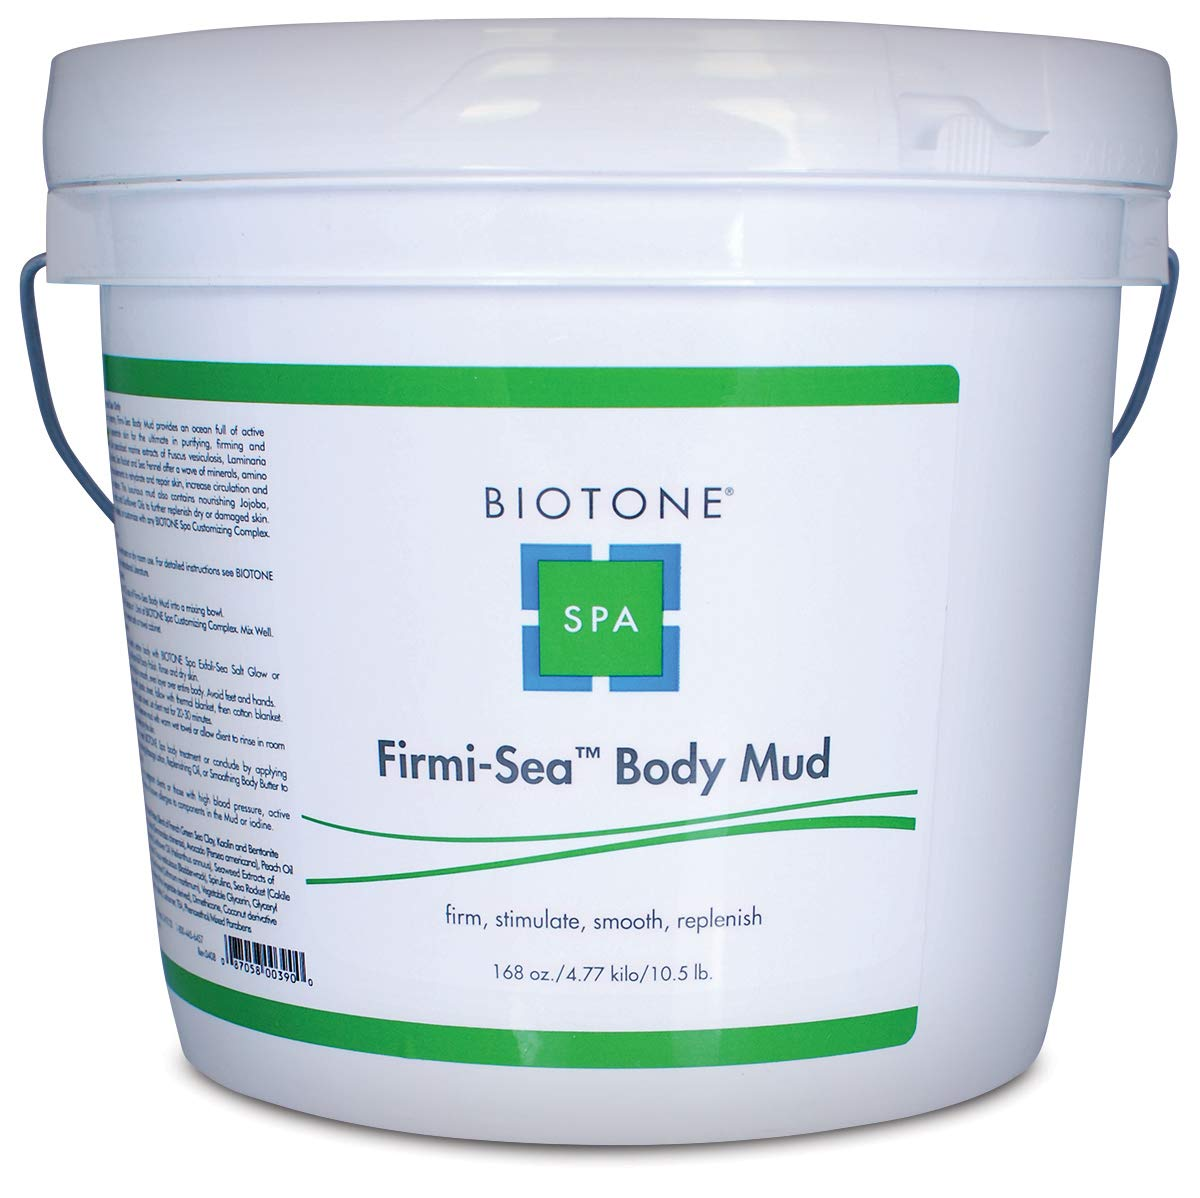 BIOTONE Firmi-Sea Body Mud - 168 oz by Biotone (Image #1)